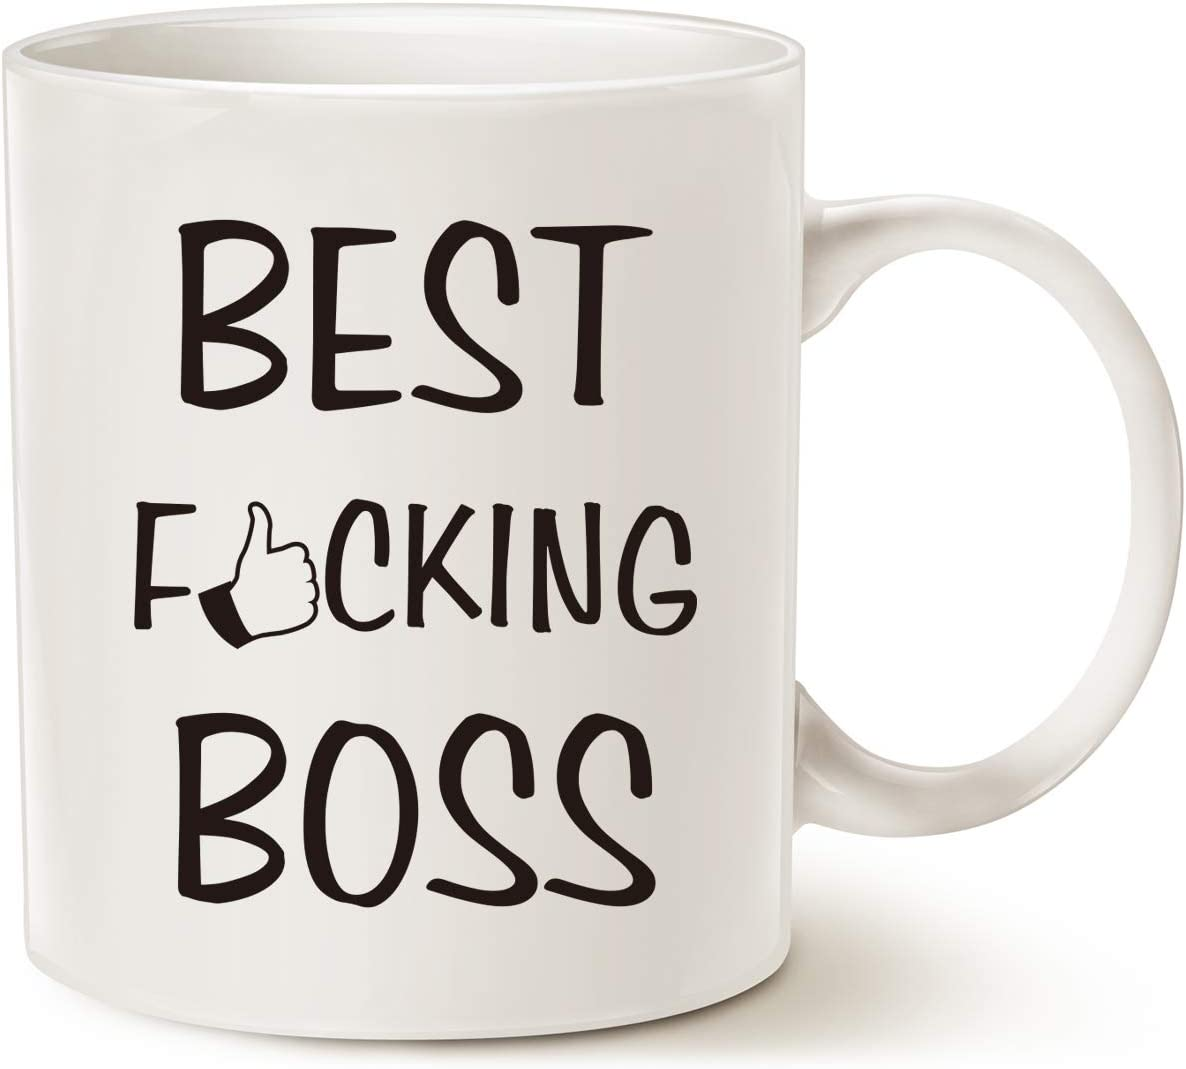 MAUAG Christmas Gifts Best Boss Ever Funny Coffee Mug for Bosses Day White 11 Oz, Work and Office Holiday or Birthday Present for Worlds Best Male or Female Boss, Manager